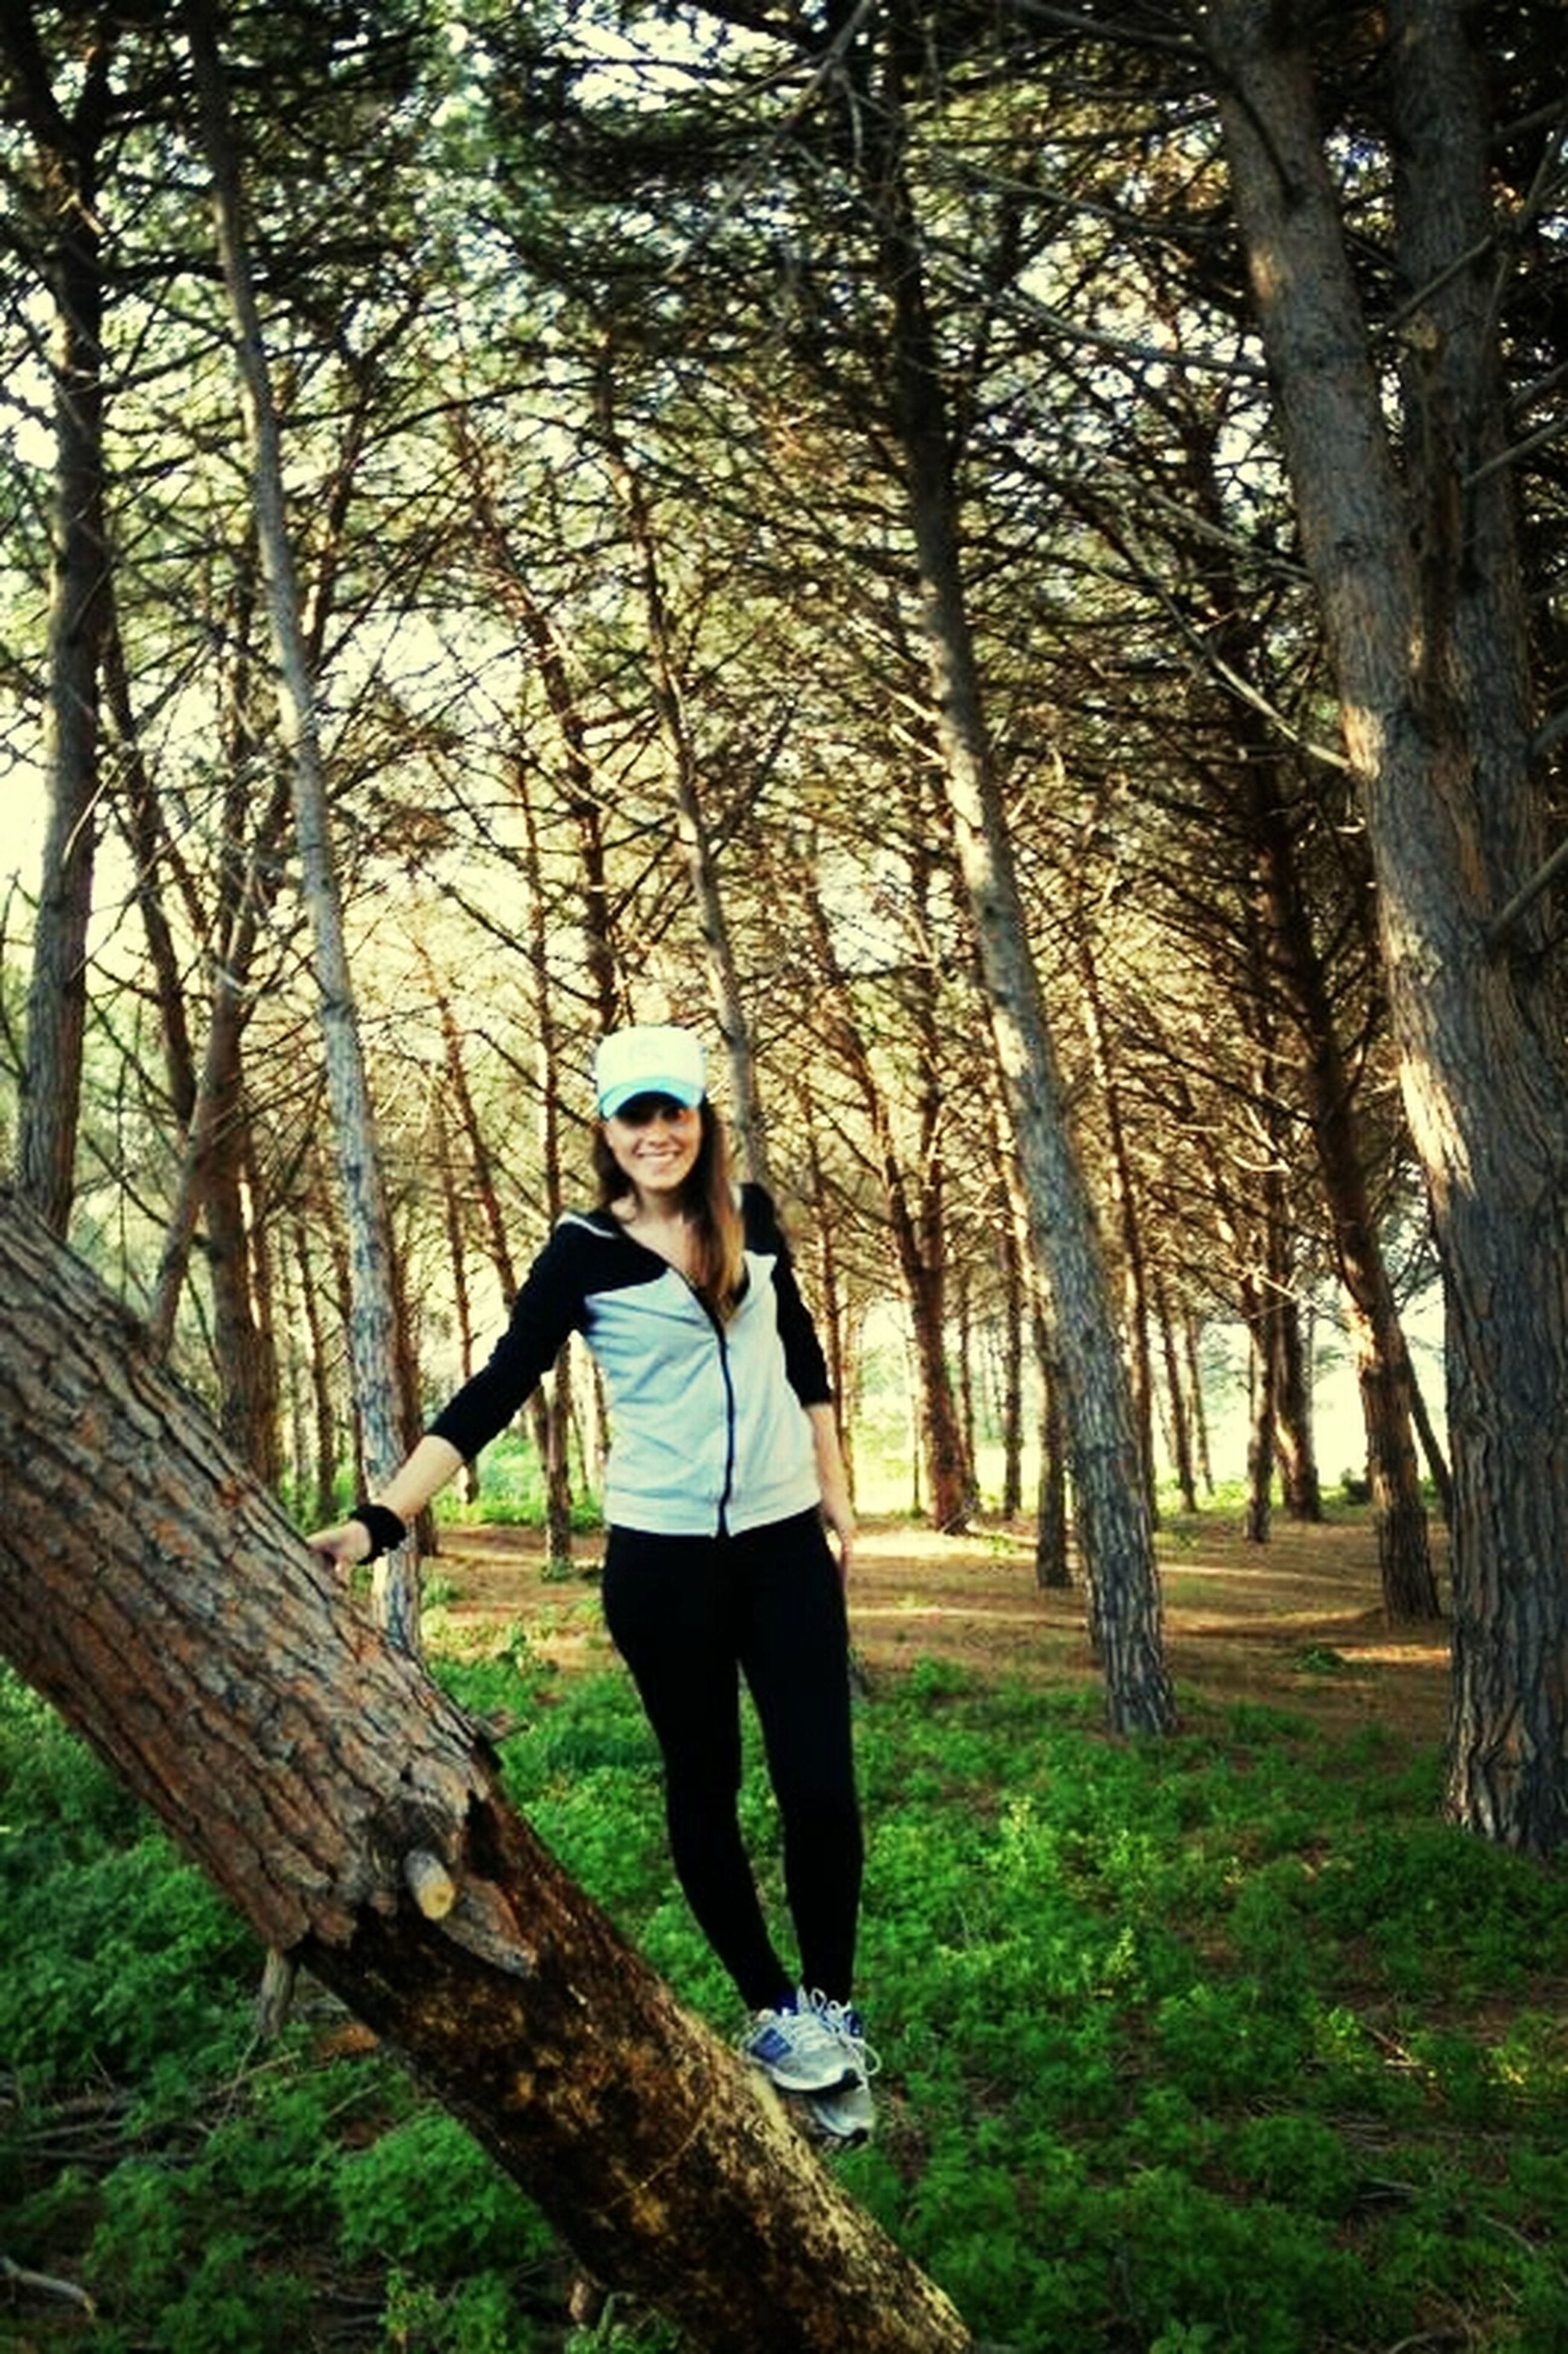 tree, lifestyles, young adult, casual clothing, tree trunk, person, leisure activity, forest, full length, looking at camera, front view, portrait, standing, young women, smiling, branch, happiness, growth